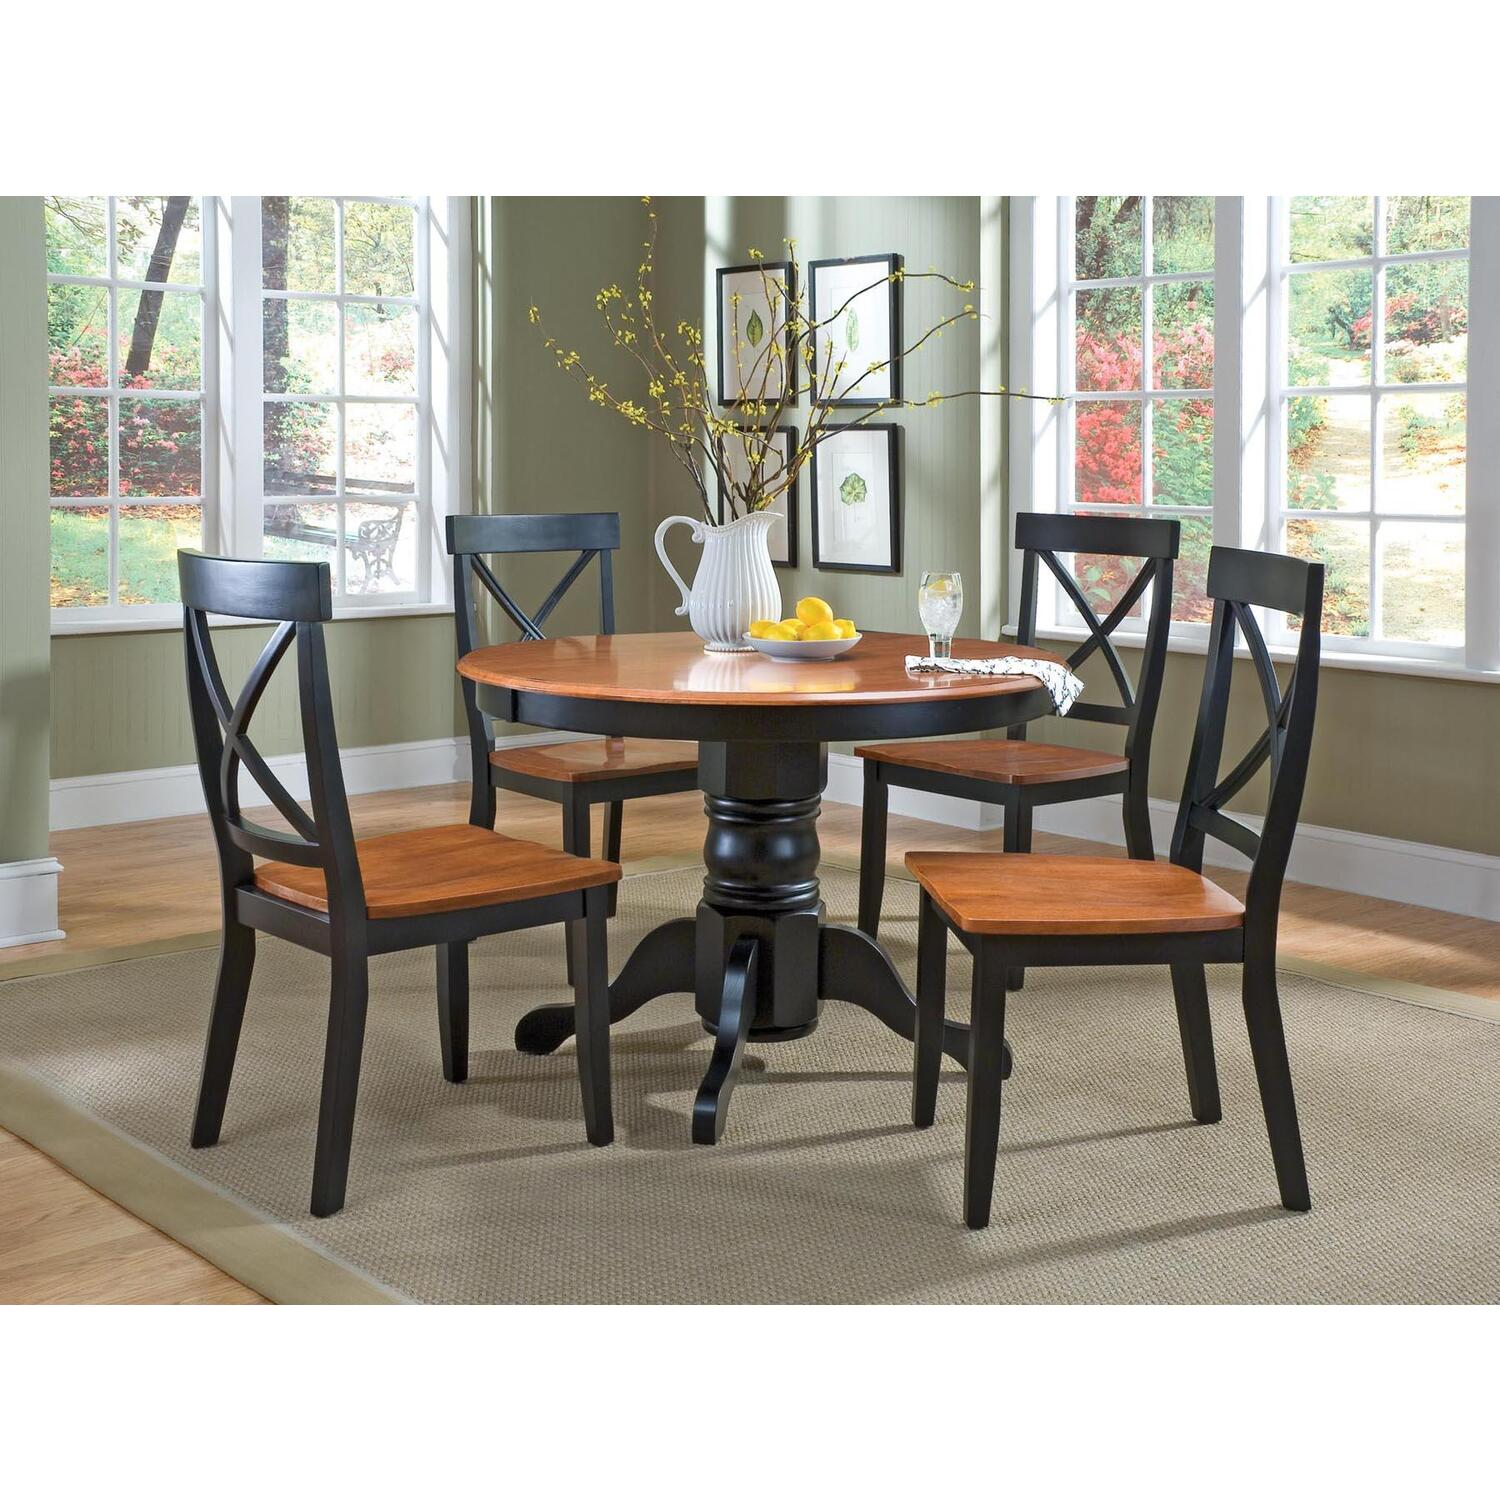 home styles 5 piece round pedestal dining set by oj commerce. Black Bedroom Furniture Sets. Home Design Ideas